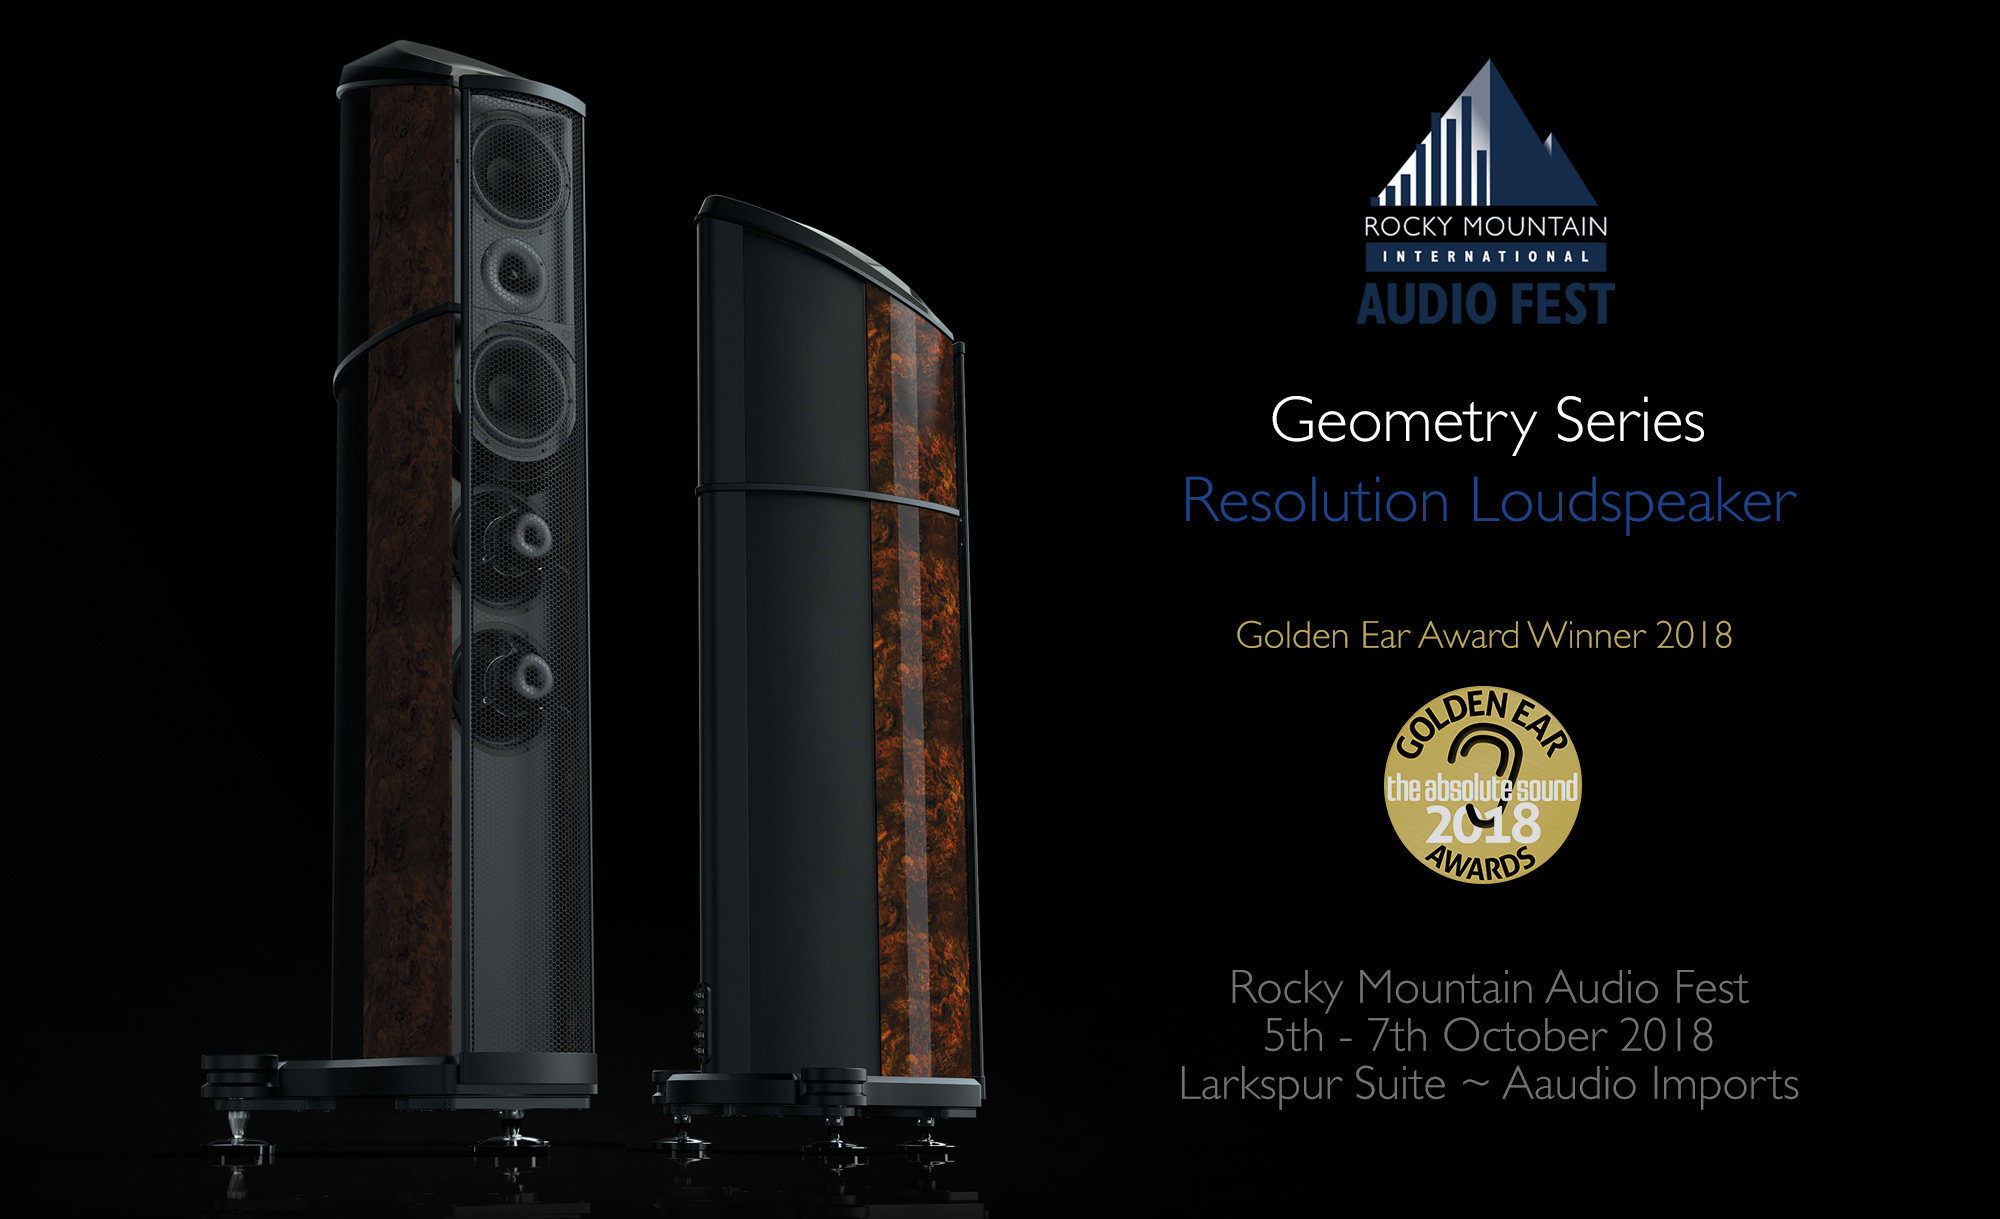 Wilson Benesch will demonstrate the Award Winning Resolution loudspeaker at the Rocky Mountain Audio Fest 2018